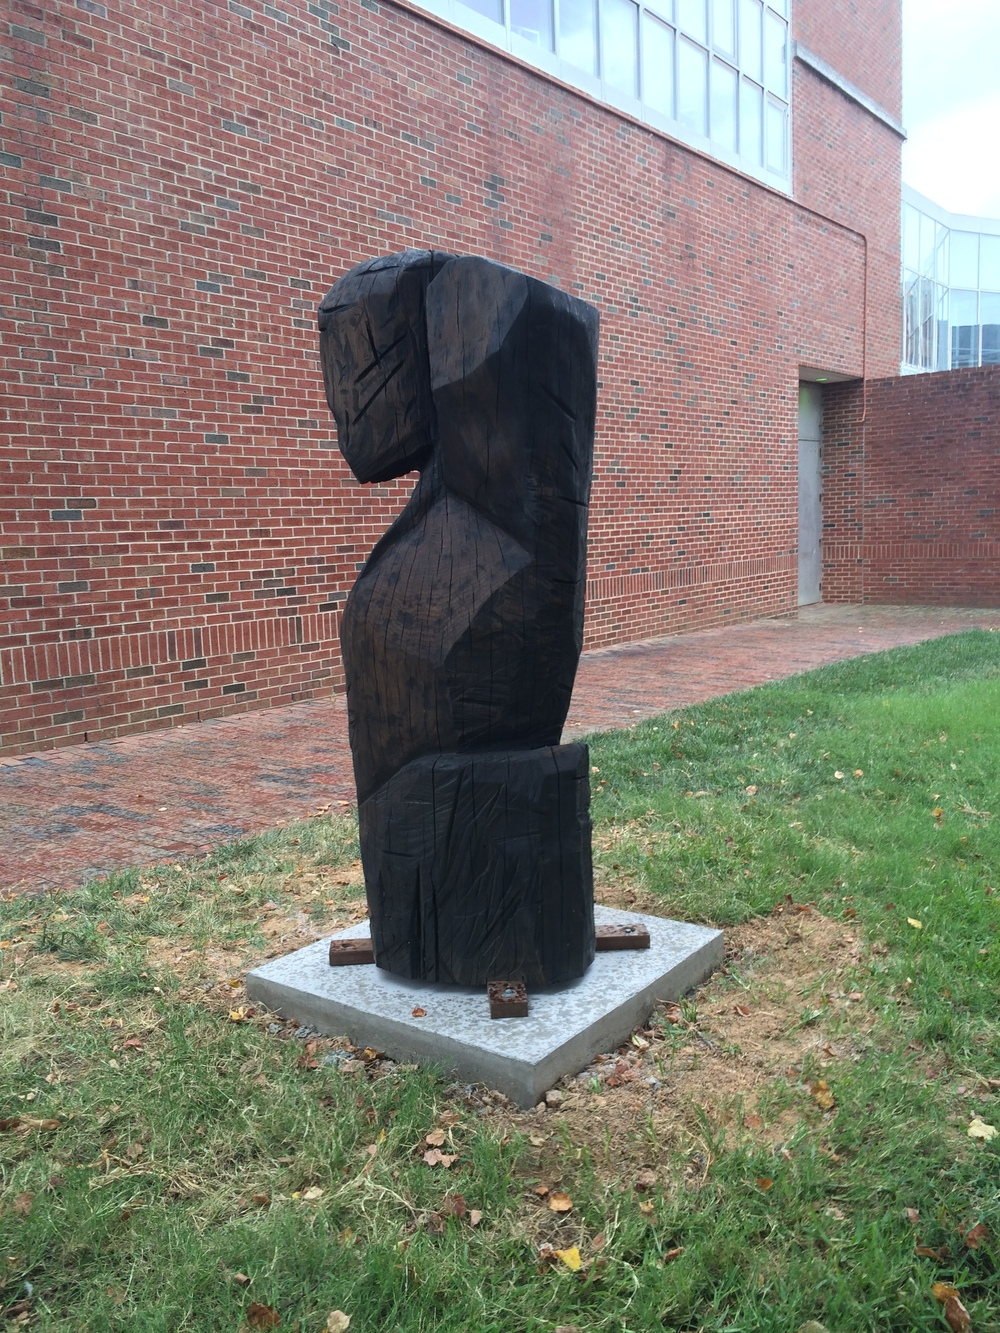 Totem n. 39 (For NC Woodworkers) , installation view  NC white oak, graphite, and tung oil  32 inch diameter, 72 inches tall, 2014-15  Commissioned by UNC-CH Art Department